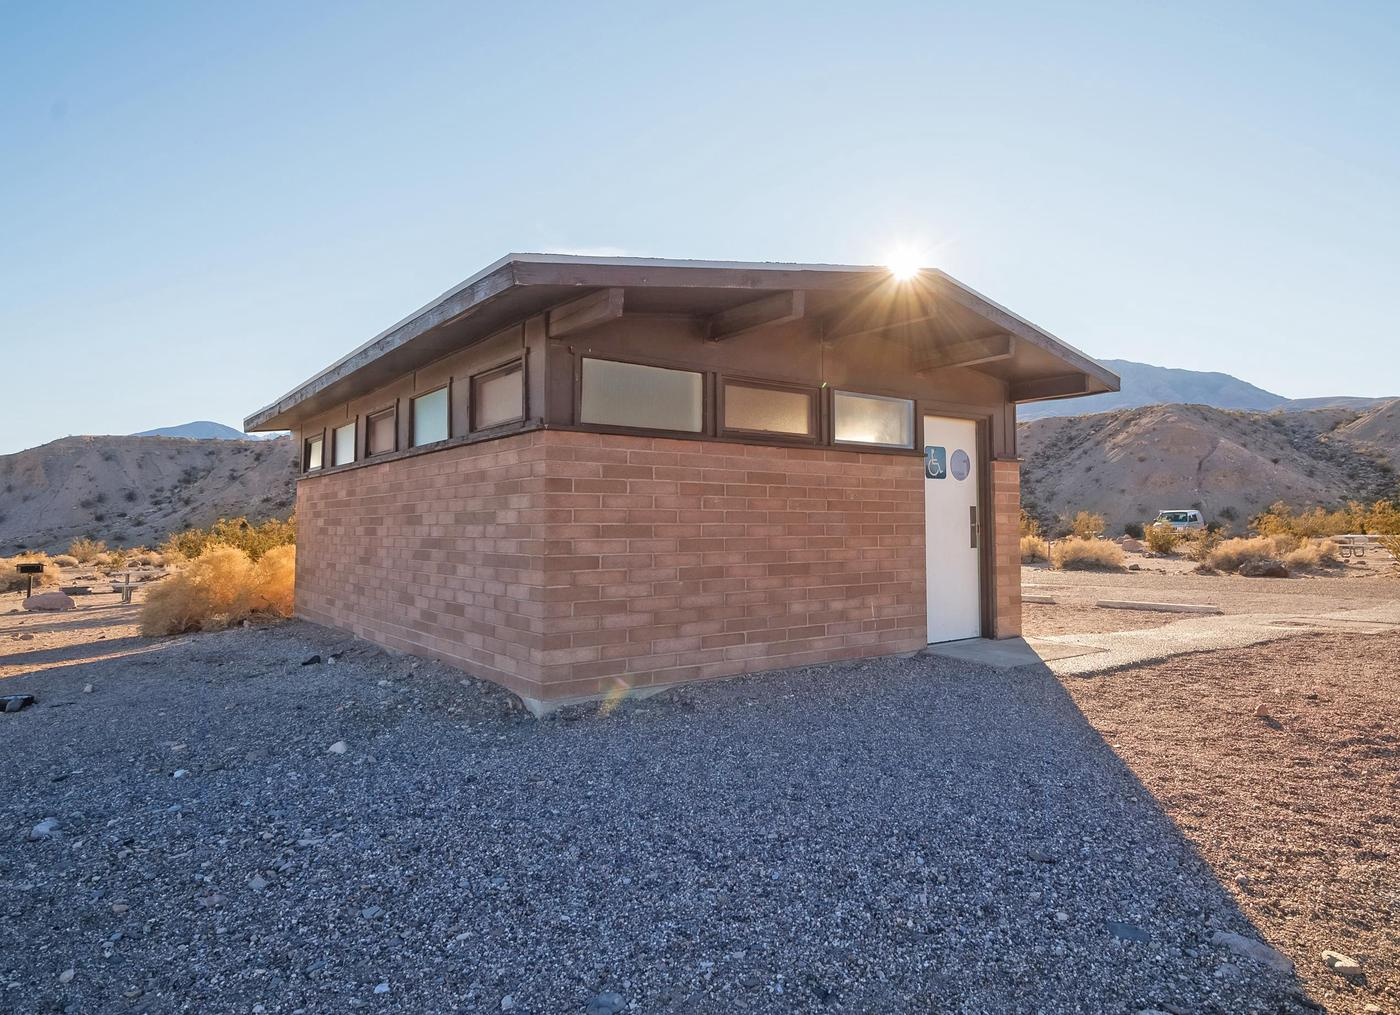 Mesquite Springs BathroomRestroom facilities are provided at the campground.